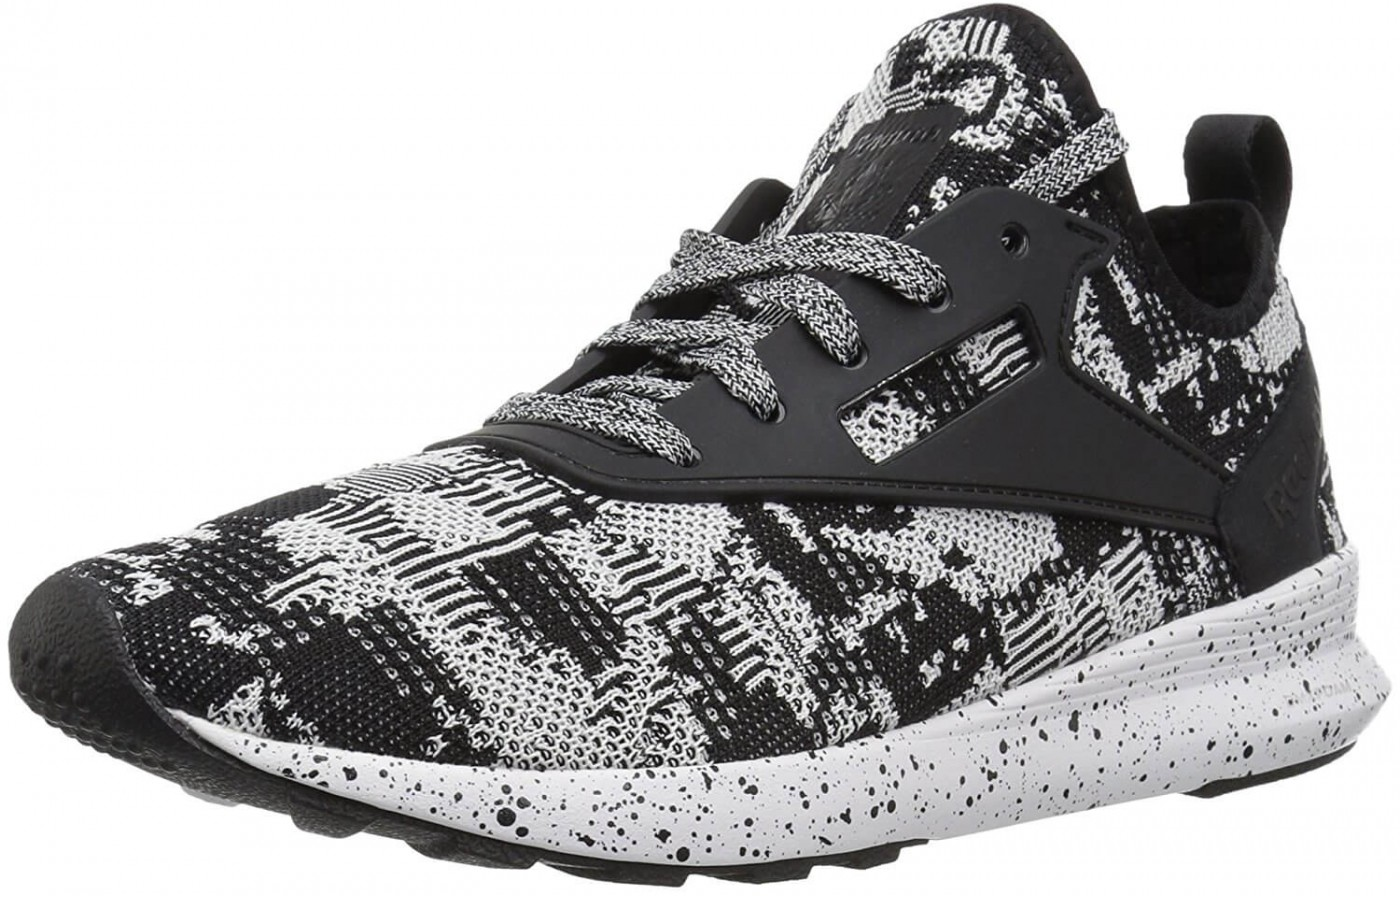 The Reebok Zoku Runner is the manufacturer's take on the popular knit fabric style of running shoe.